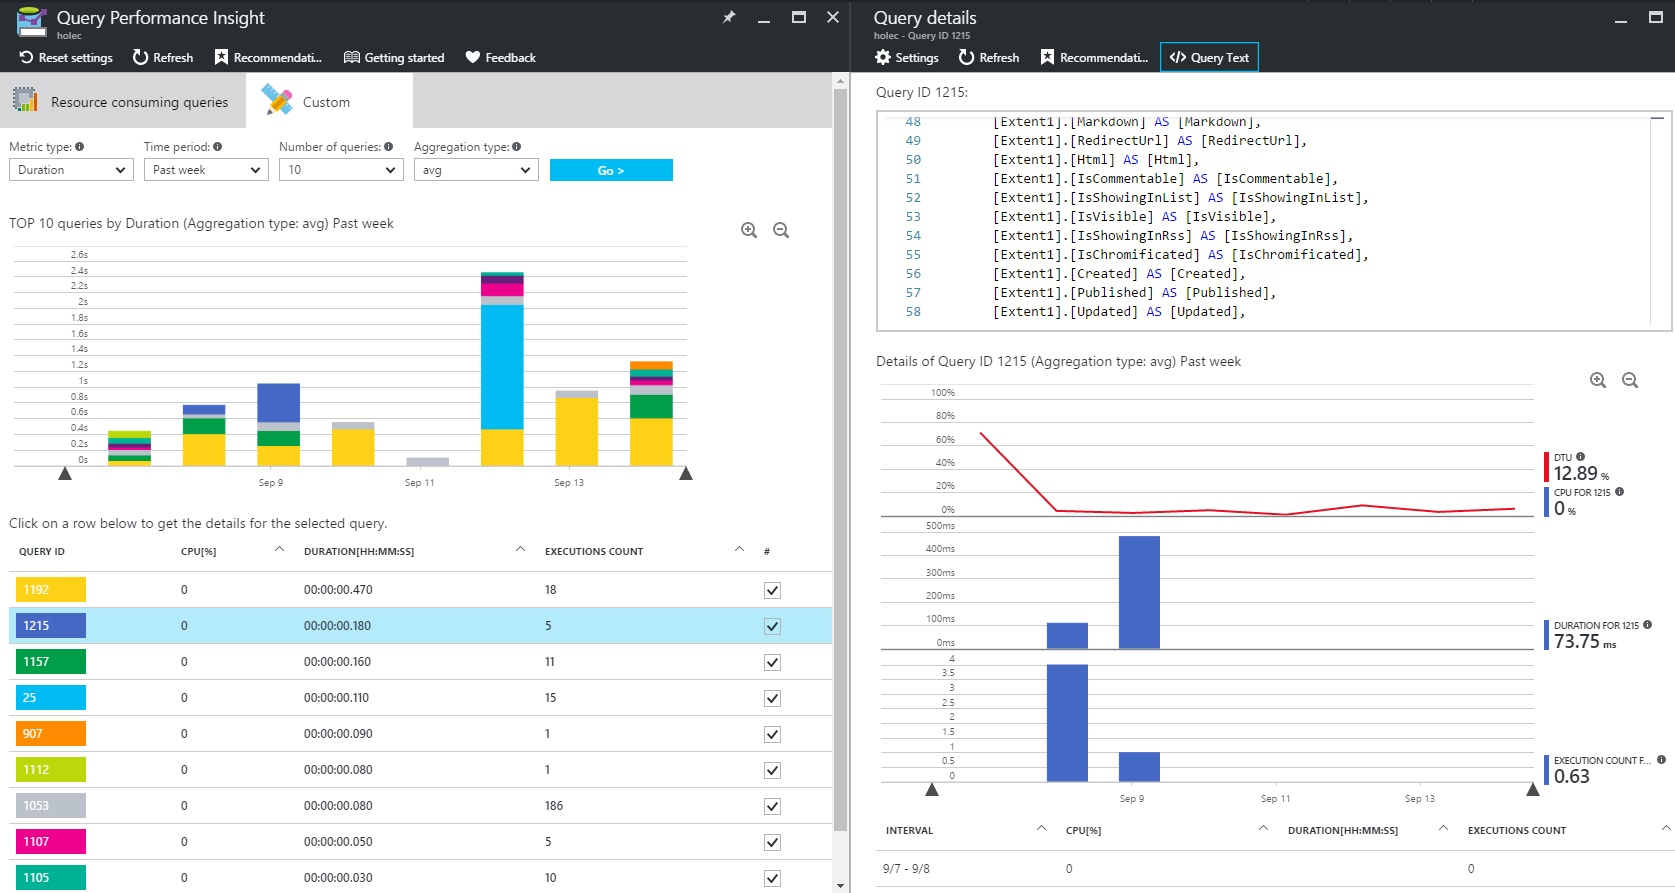 Query performance insight